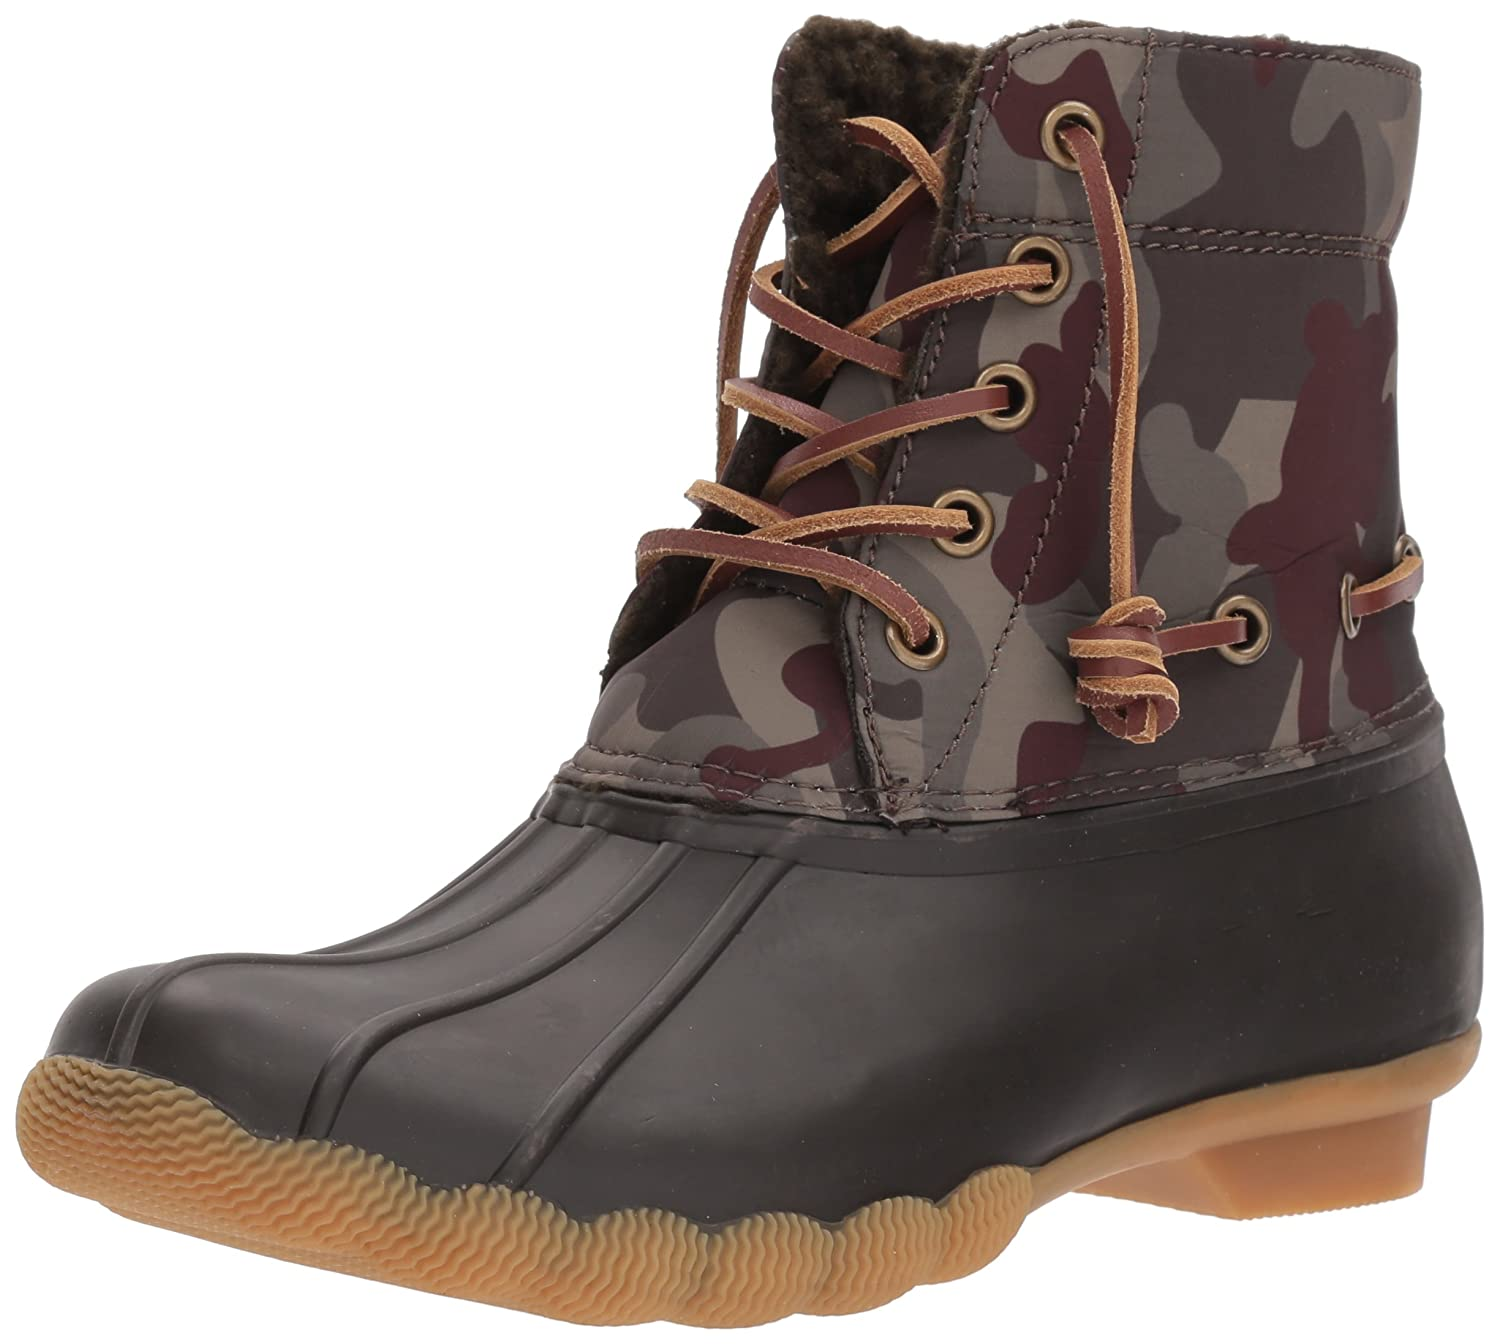 Steve Madden Women's Torrent Rain Boot B075Y8WCCZ 9 B(M) US|Camo Multi